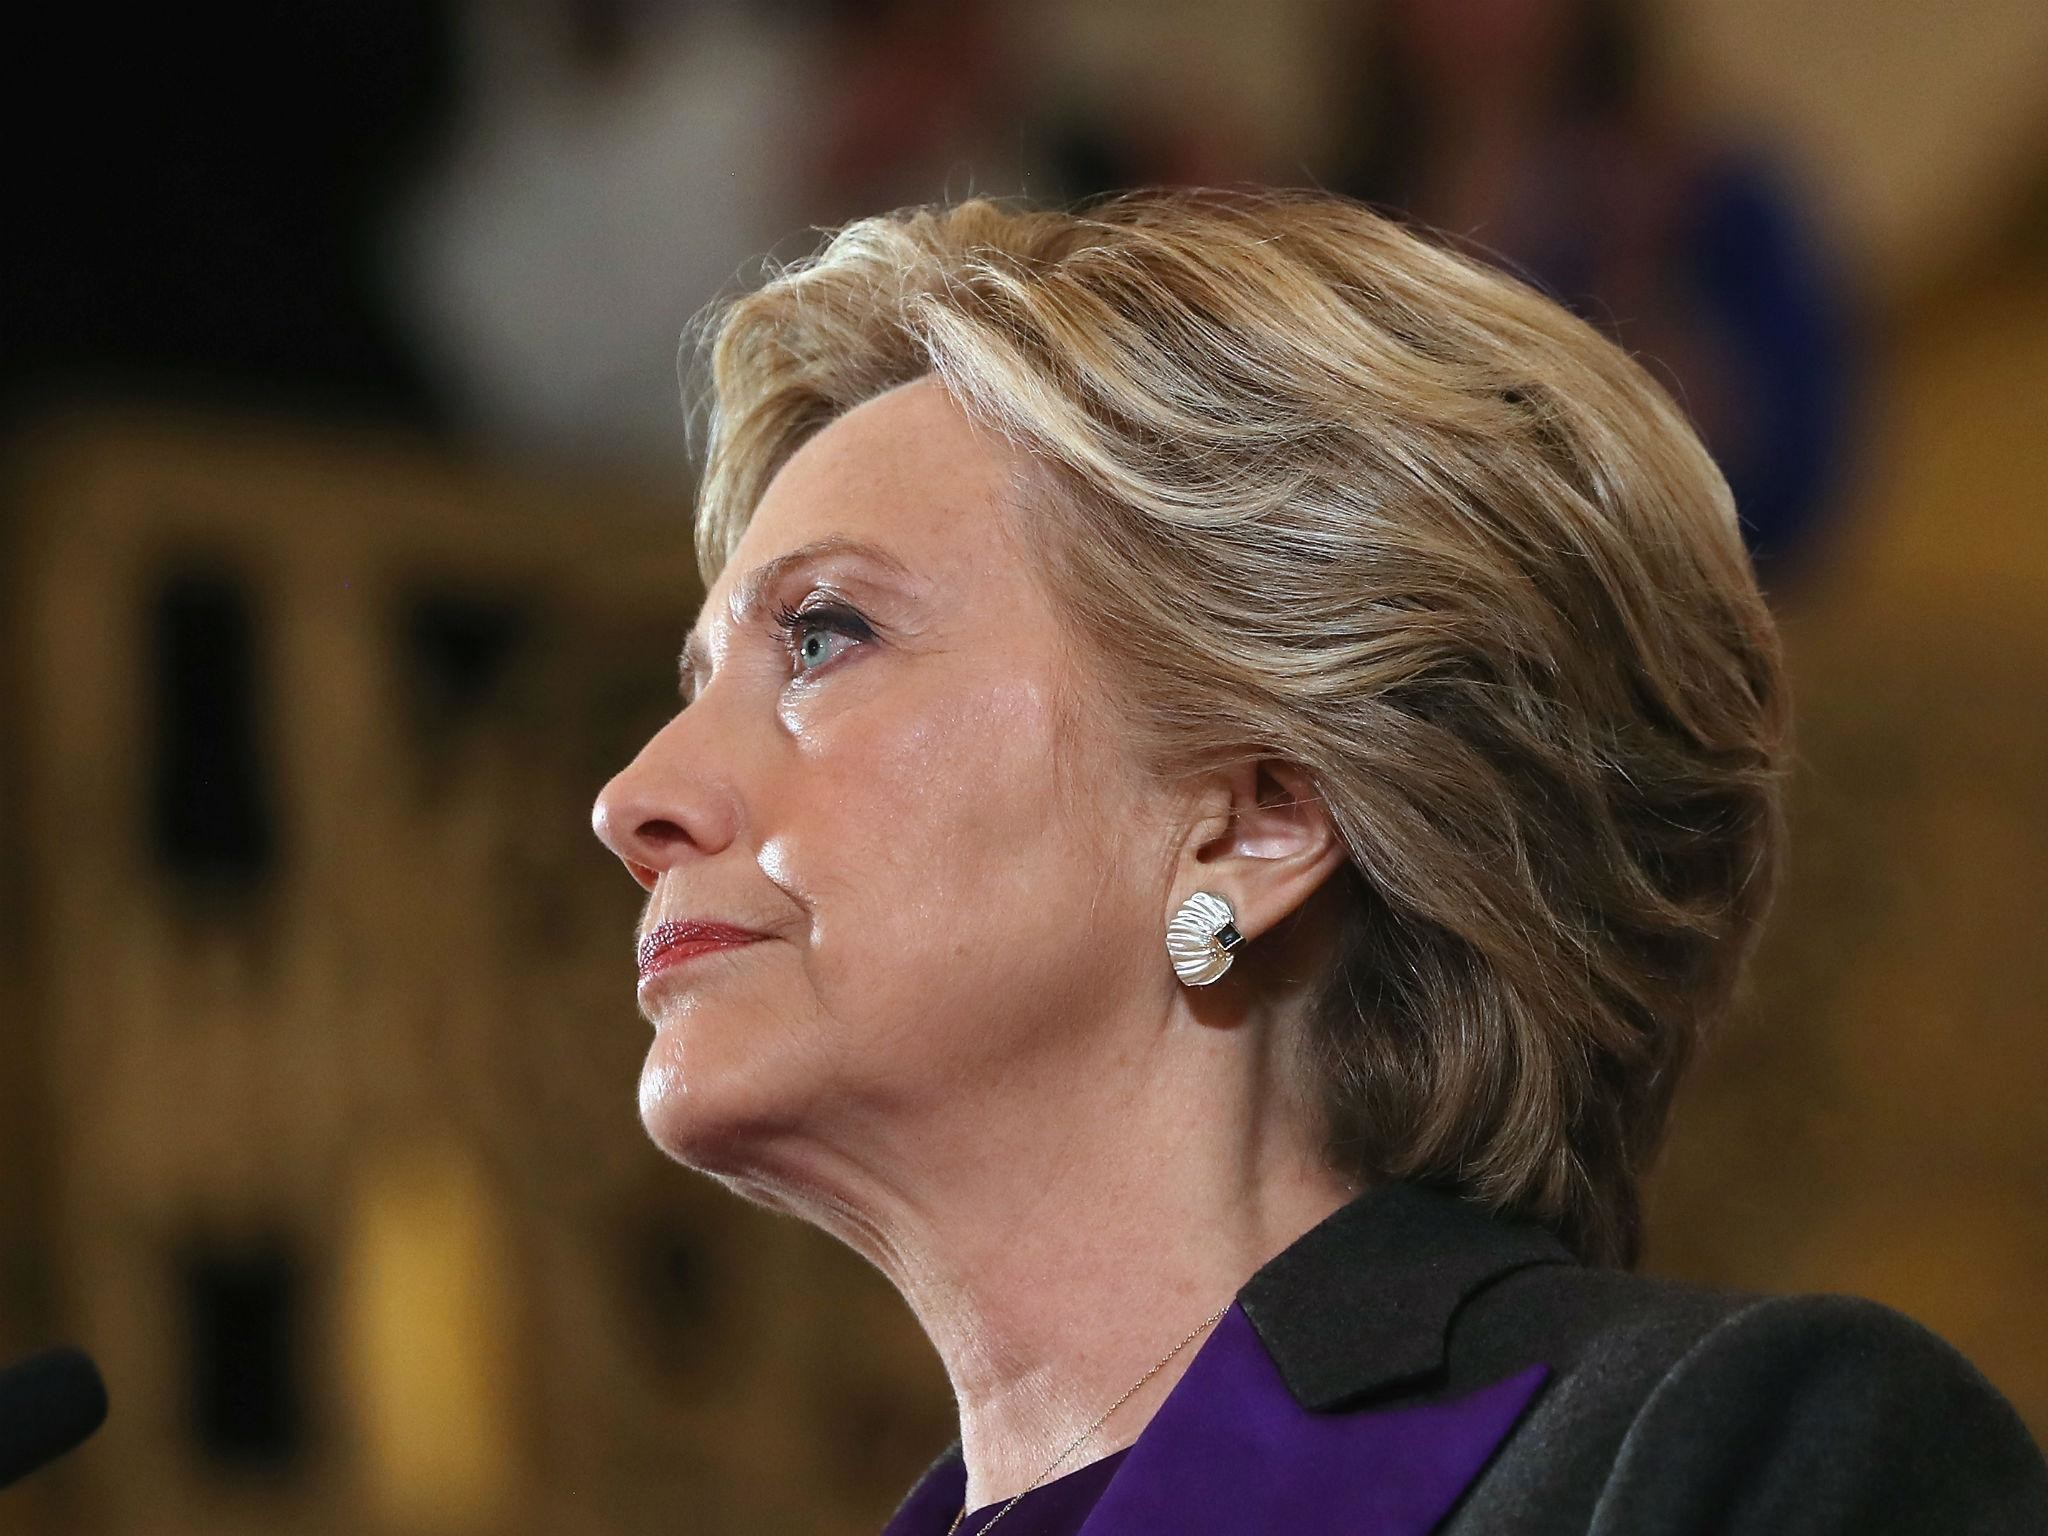 2048x1536 Hillary Clinton concession speech: 'America is more deeply divided than we  thought' | The Independent